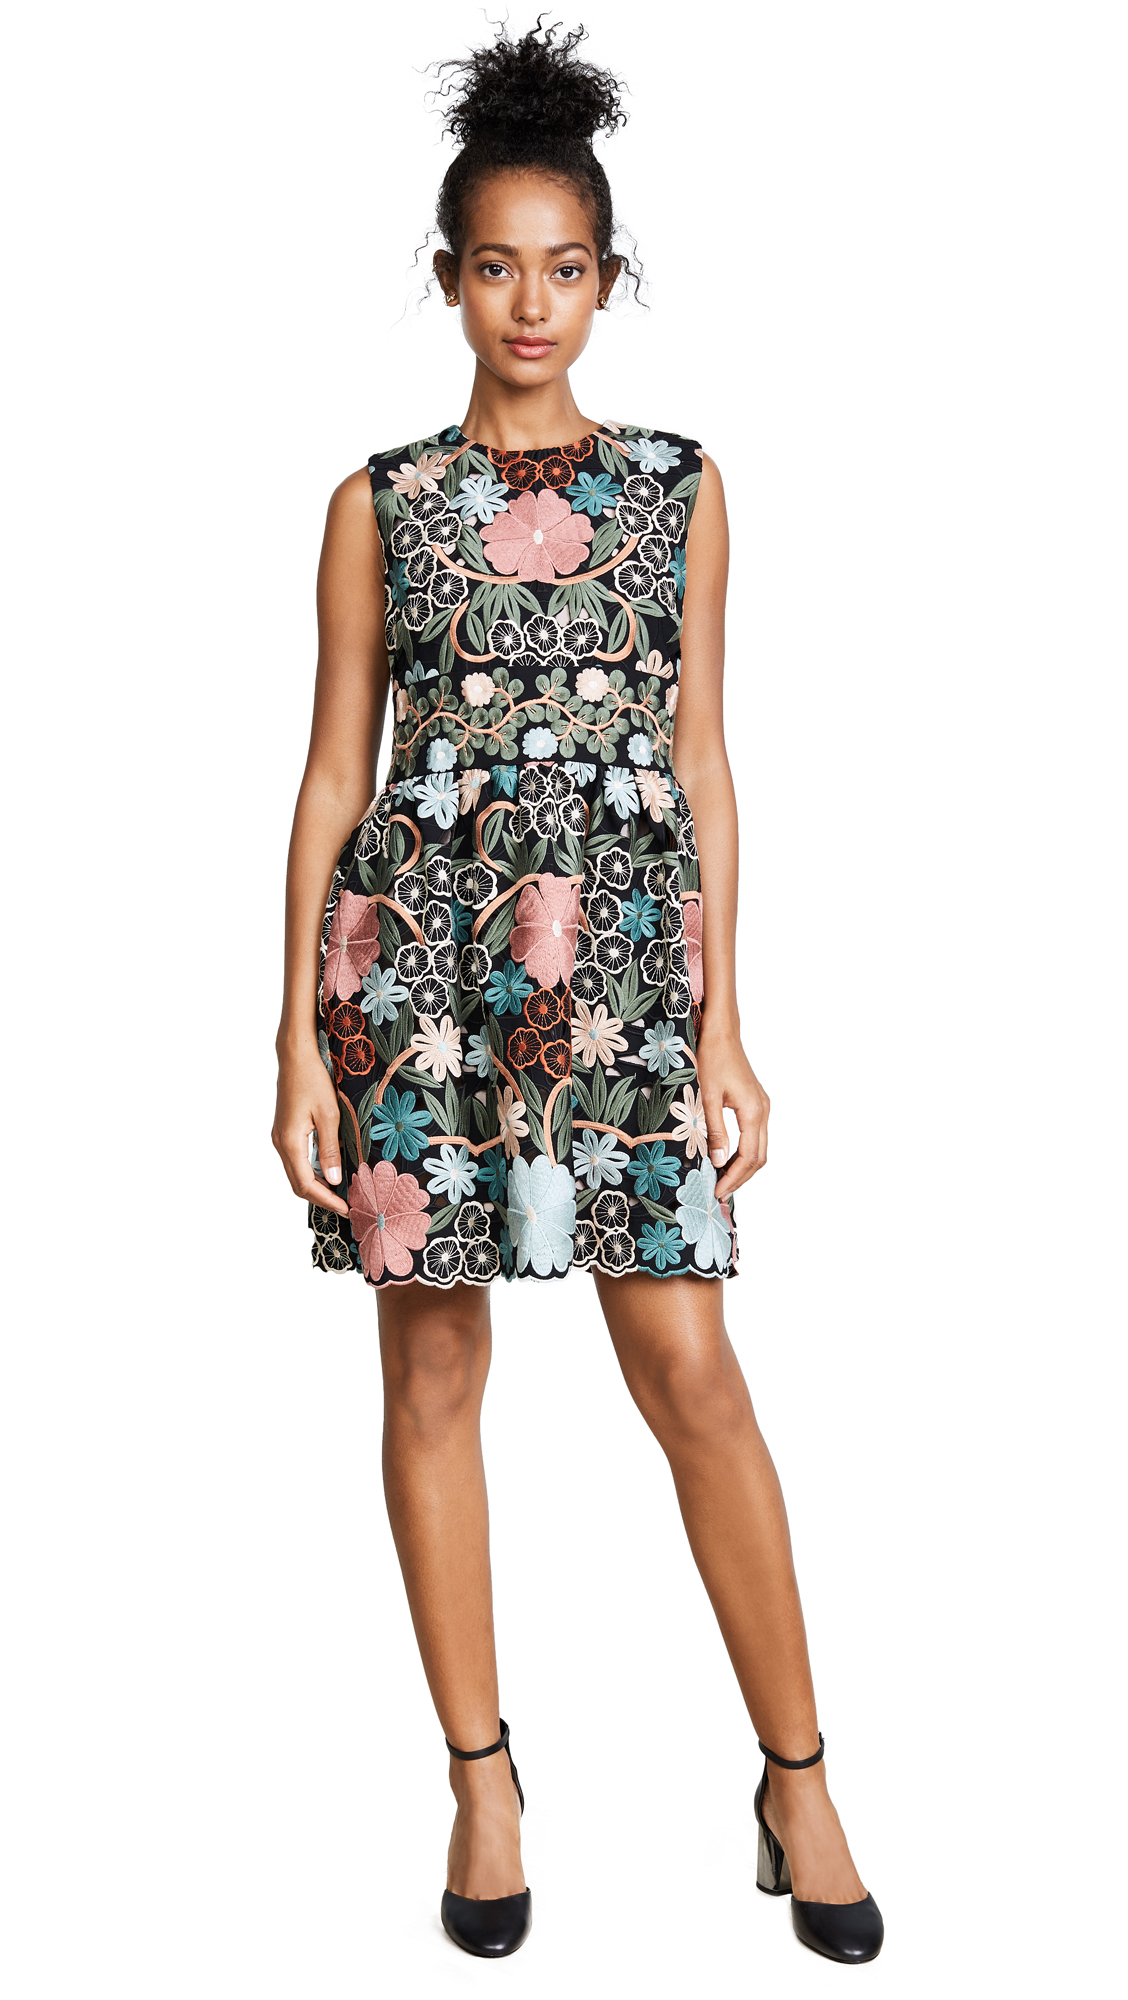 RED Valentino Crepe Embroidered Dress - Antique Rose